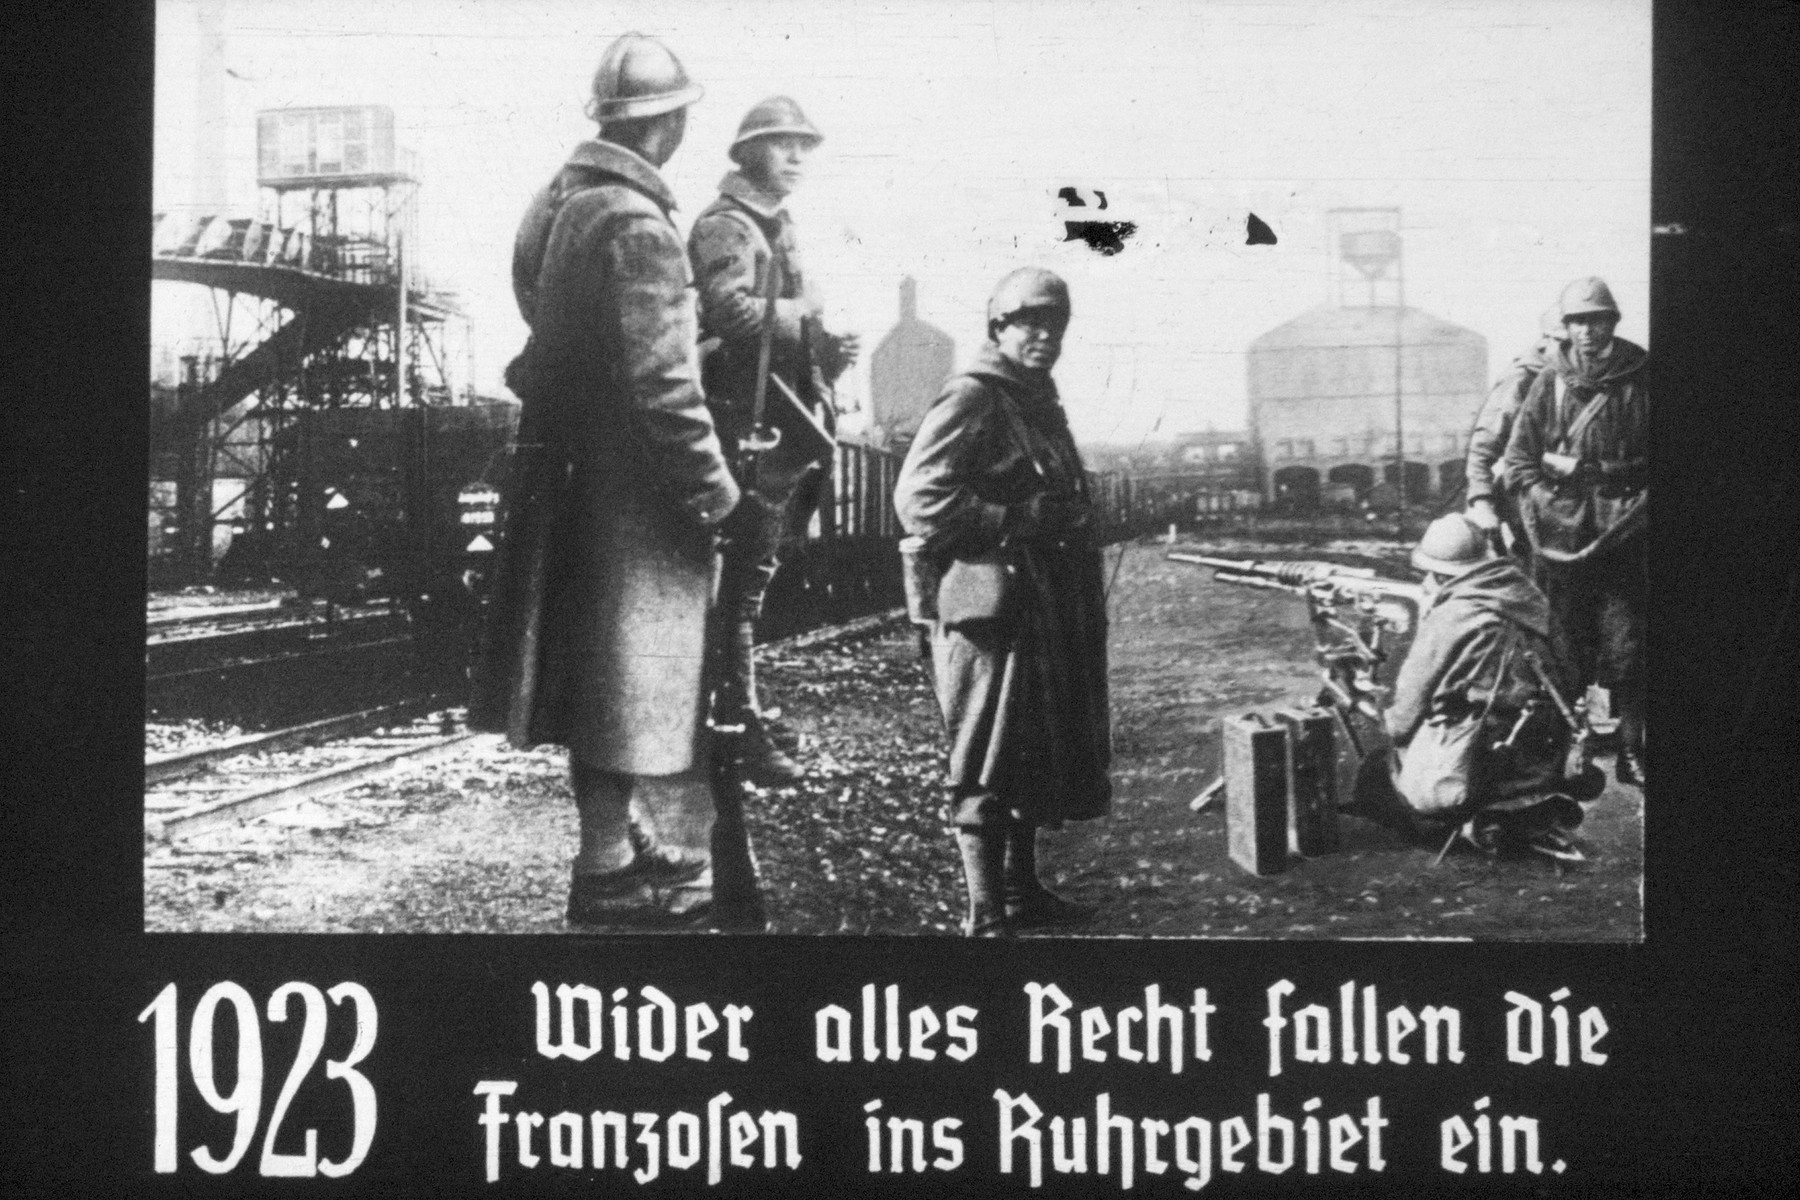 25th slide from a Hitler Youth slideshow about the aftermath of WWI, Versailles, how it was overcome and the rise of Nazism.  1923 Wider alles Recht fallen die Franzosen ins Ruhrgbiet ein // 1923 Against all rights the French are invading the Ruhr.